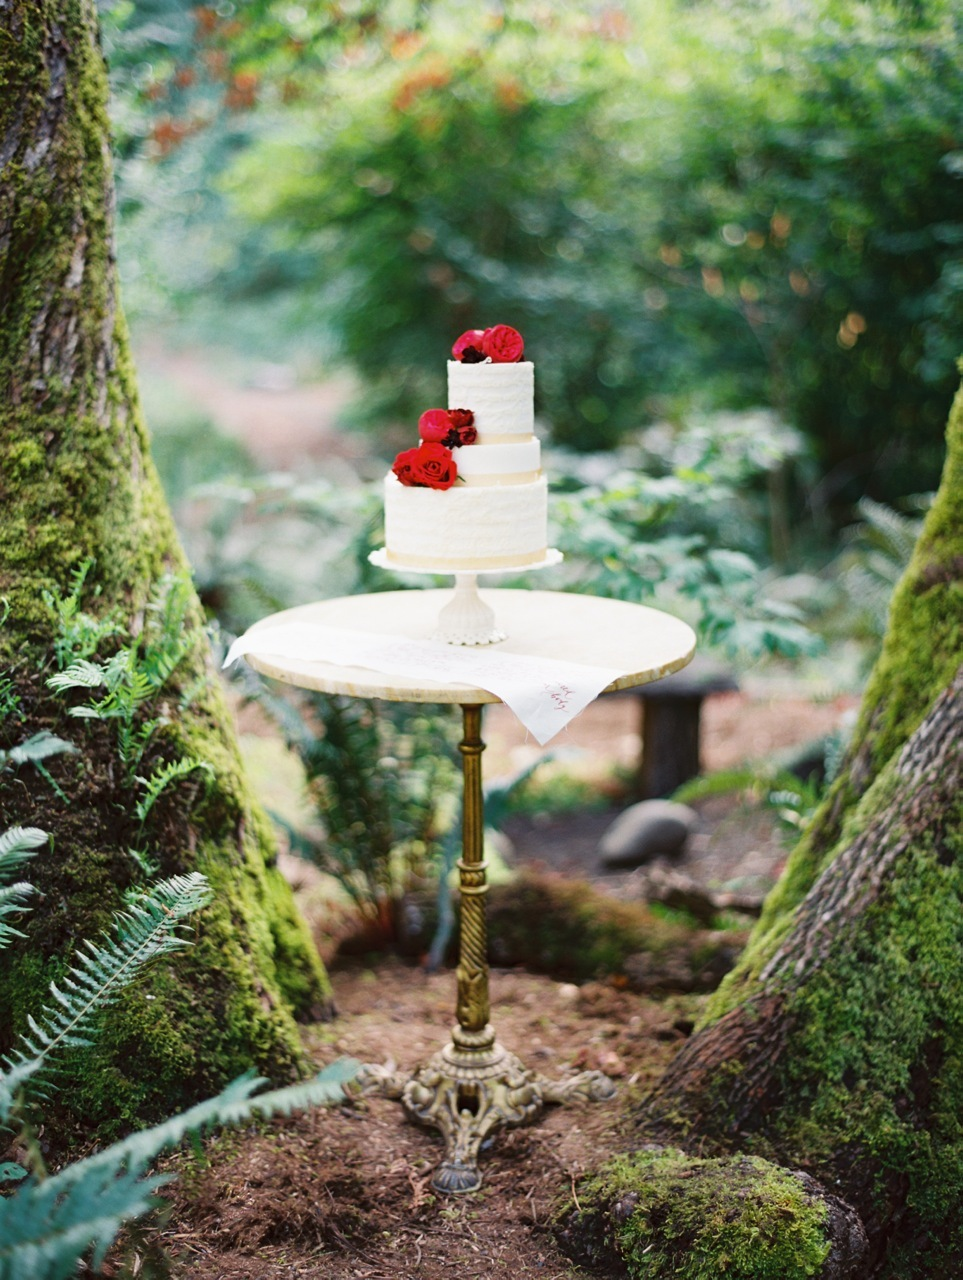 Cakes, red, cake, Table, Crimson, Marble, Love poems styled wedding